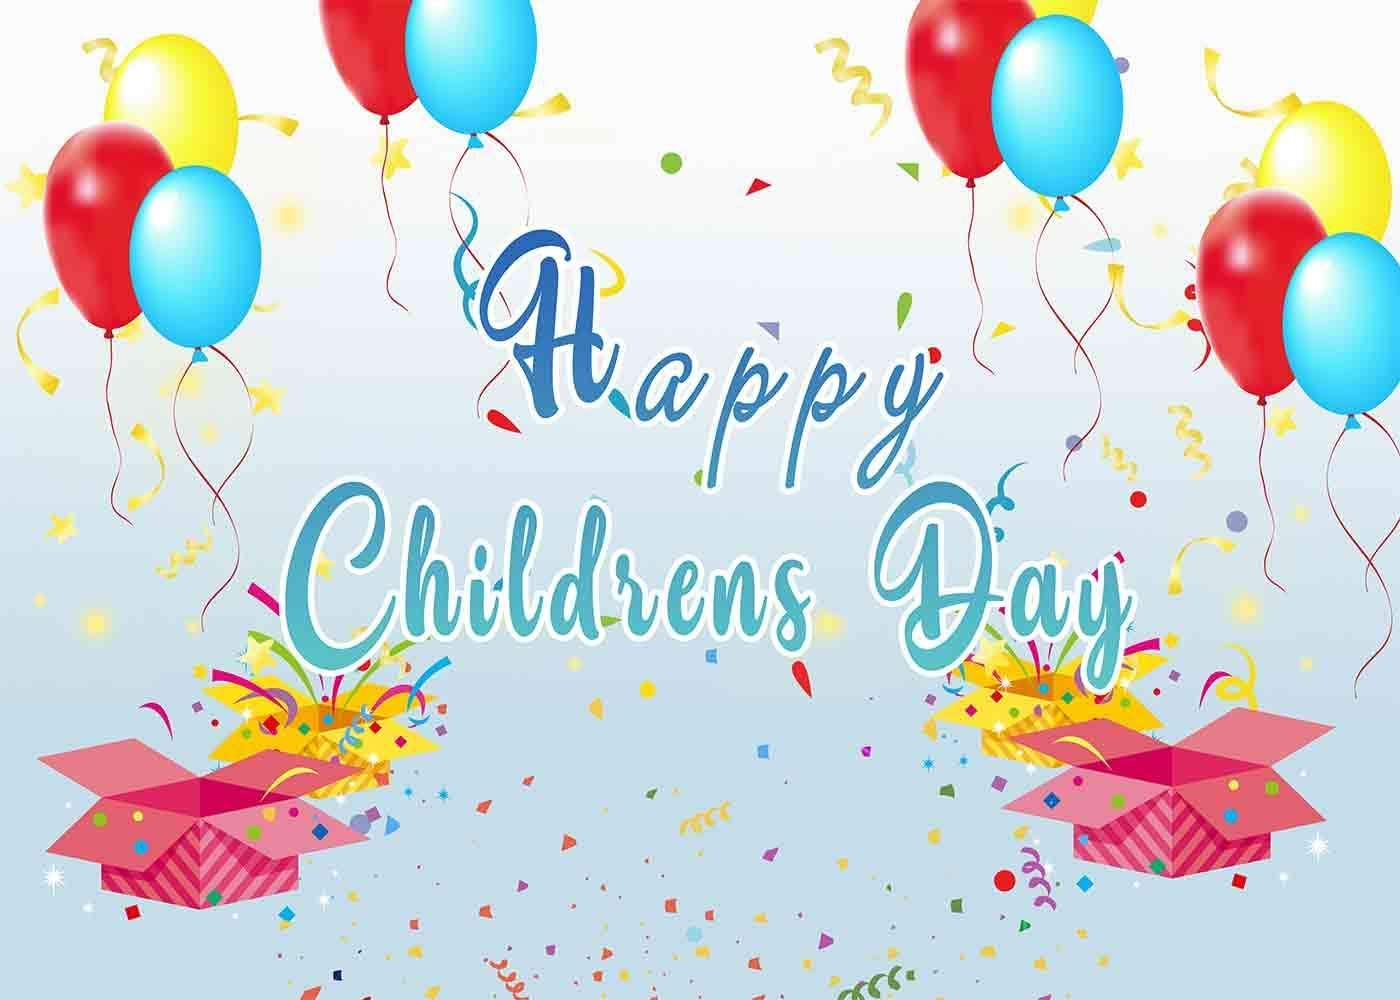 10x8ft Happy Childrens Day Photography Backdrop Customized Background Event Photo Props LHFU283